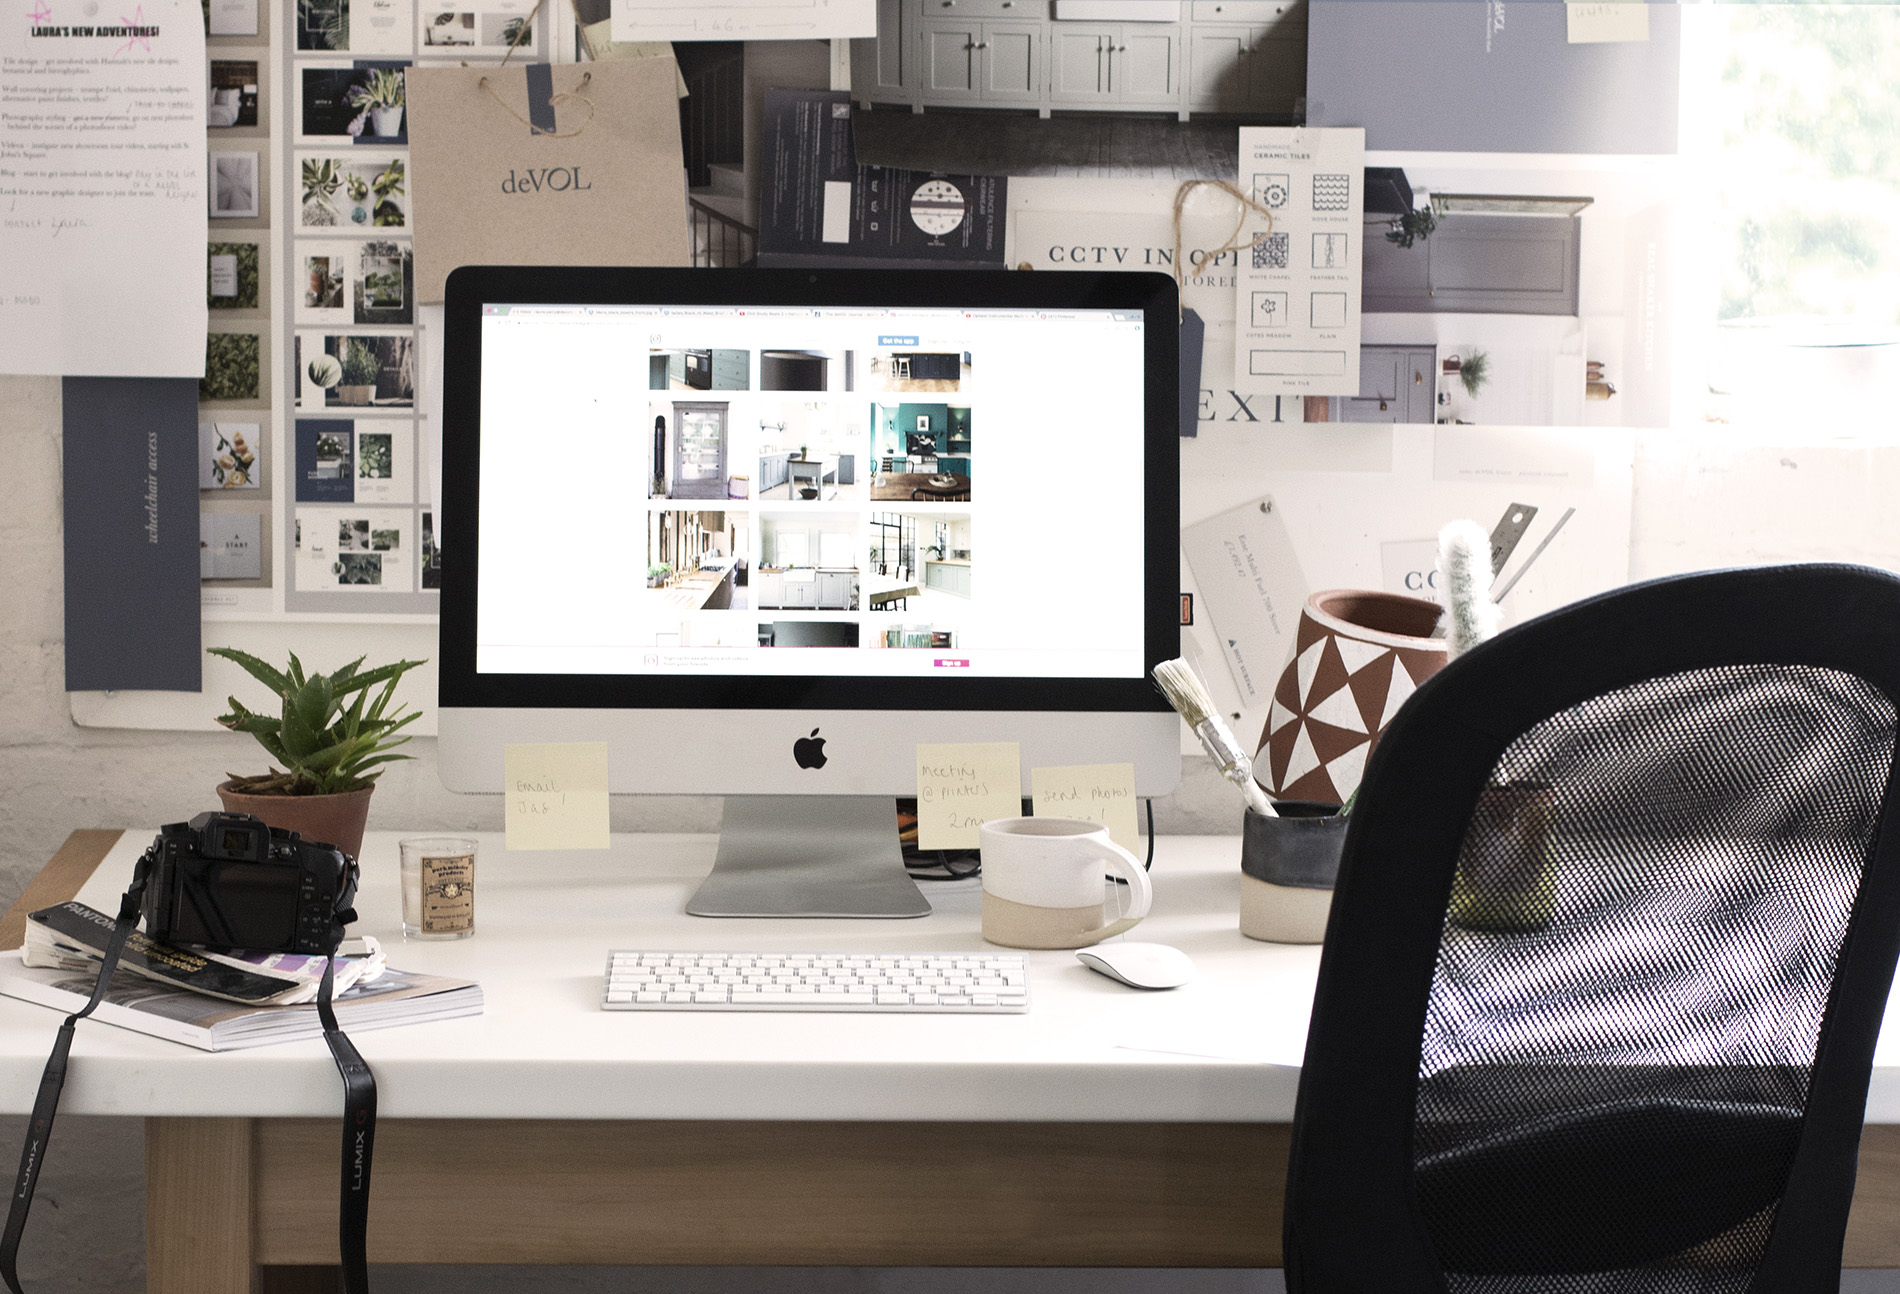 graphic design office. Welcome To My Little Corner Of The Office! Graphic Design Office